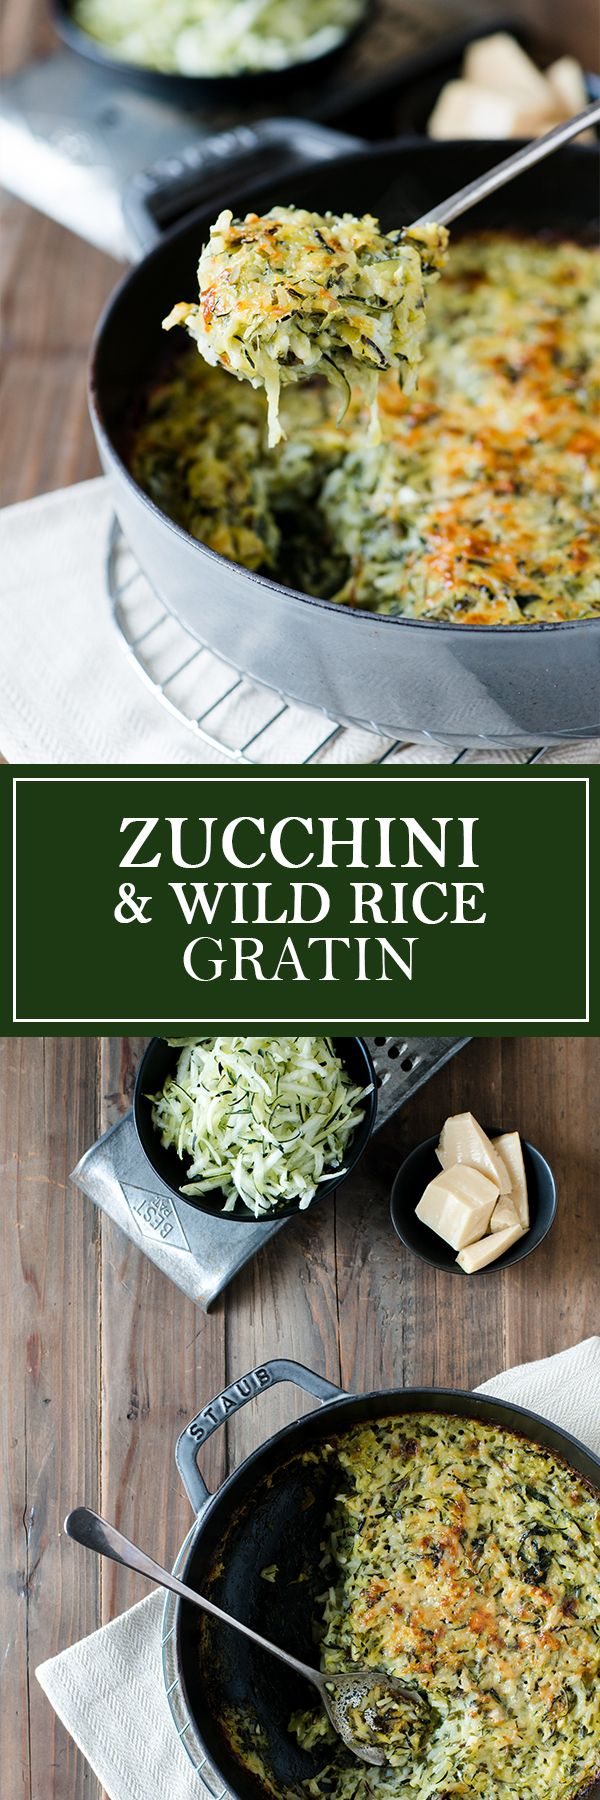 Zucchini & Wild Rice Gratin - So rich & creamy, you'd never guess...